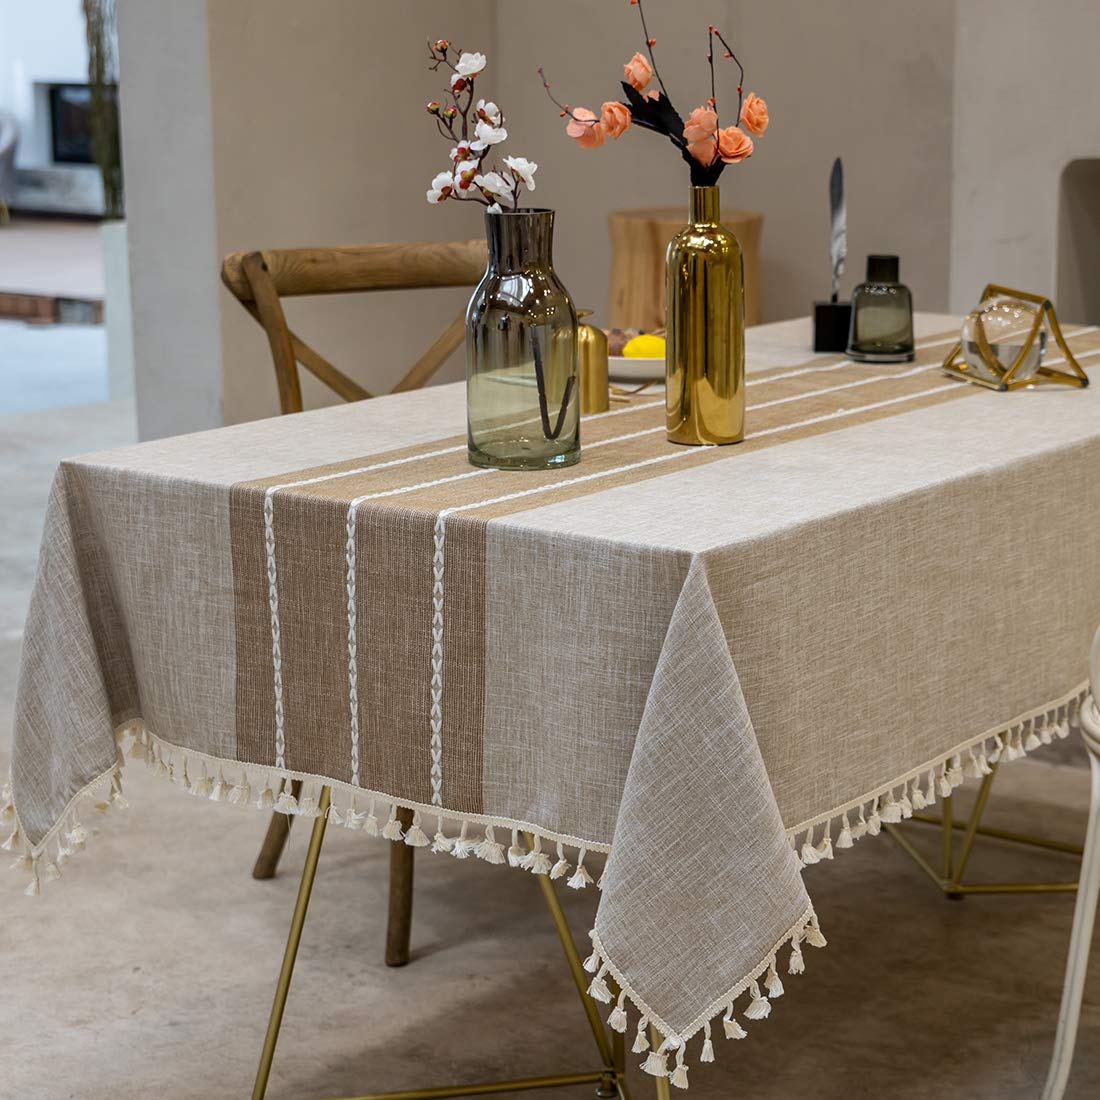 Amazon Com Tewene Tablecloth Rectangle Table Cloth Cotton Linen Wrinkle Free Anti Fading Tablecloths Embroidery Tassel Table Cover For Dining Kitchen Rectangle Oblong 55 X102 8 10 Seats Light Coffee Home Kitchen